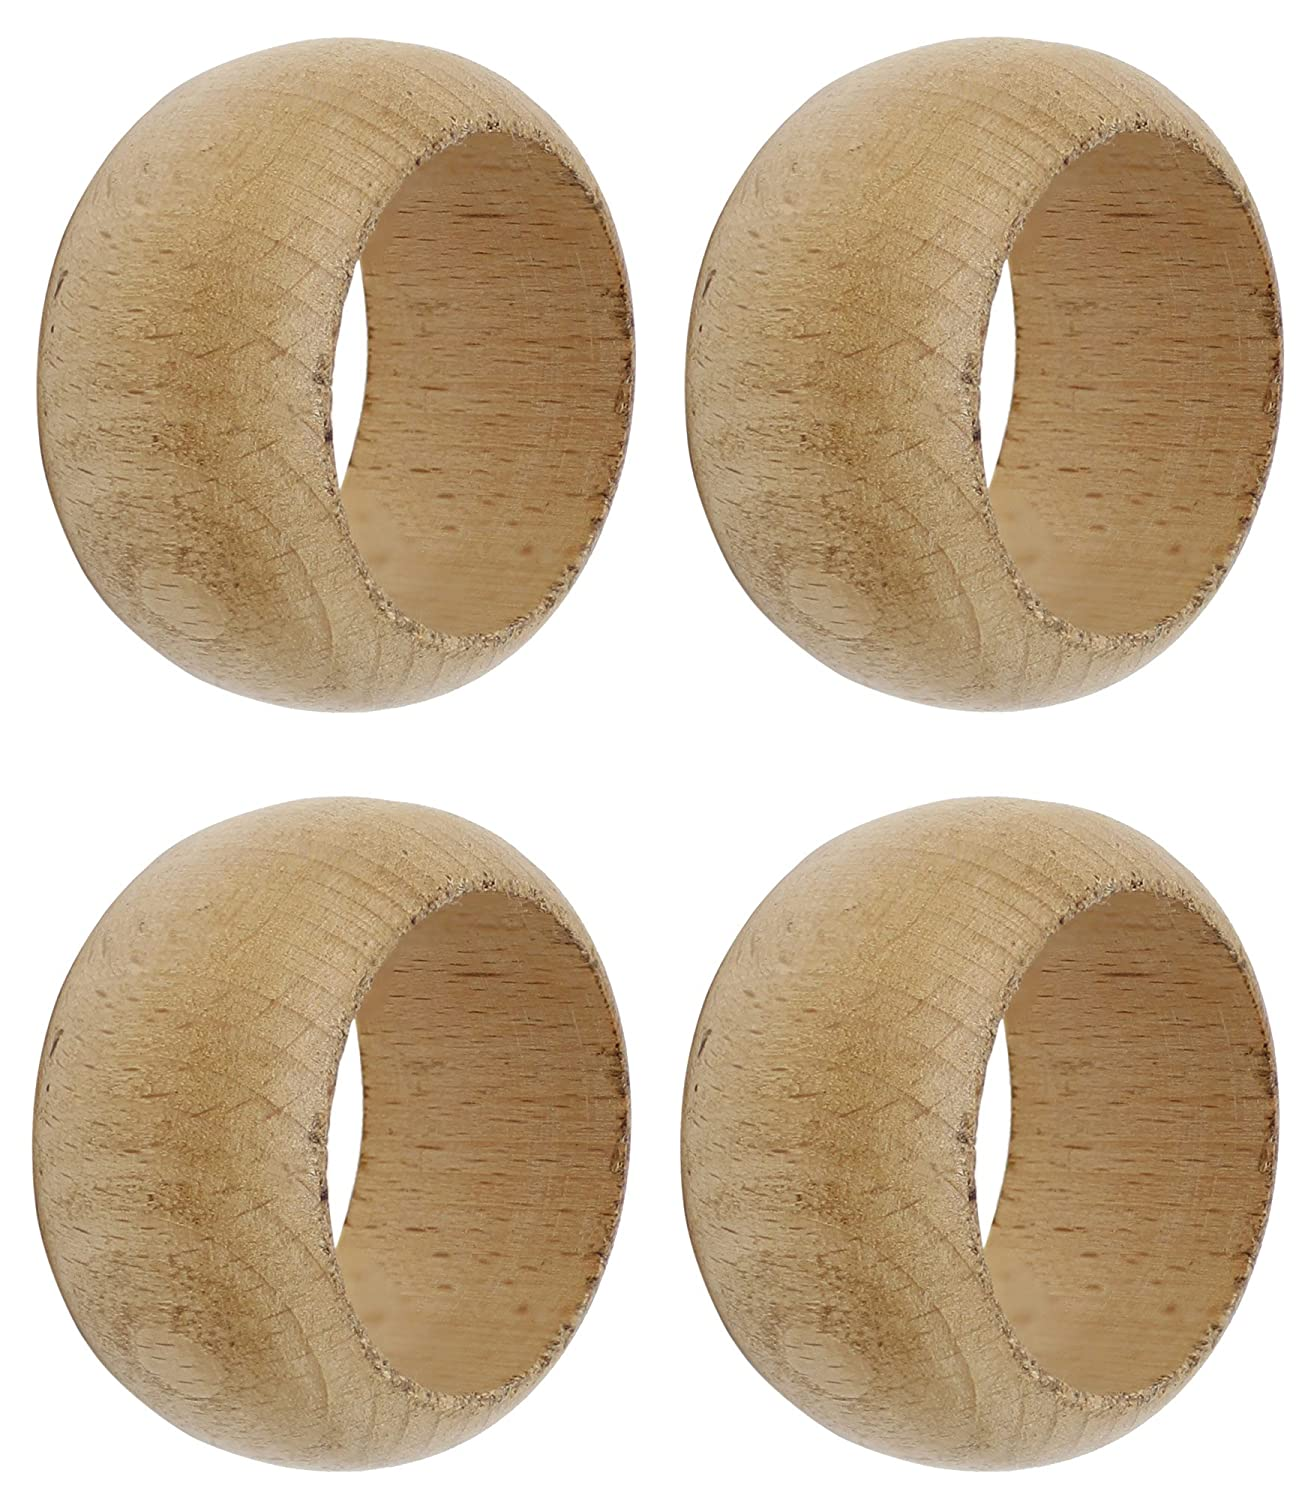 SKAVIJ Wooden Napkin Rings for Weddings Dinners Parties or Everyday Use Natural Wood, Set of 4 M-SNR-017-4